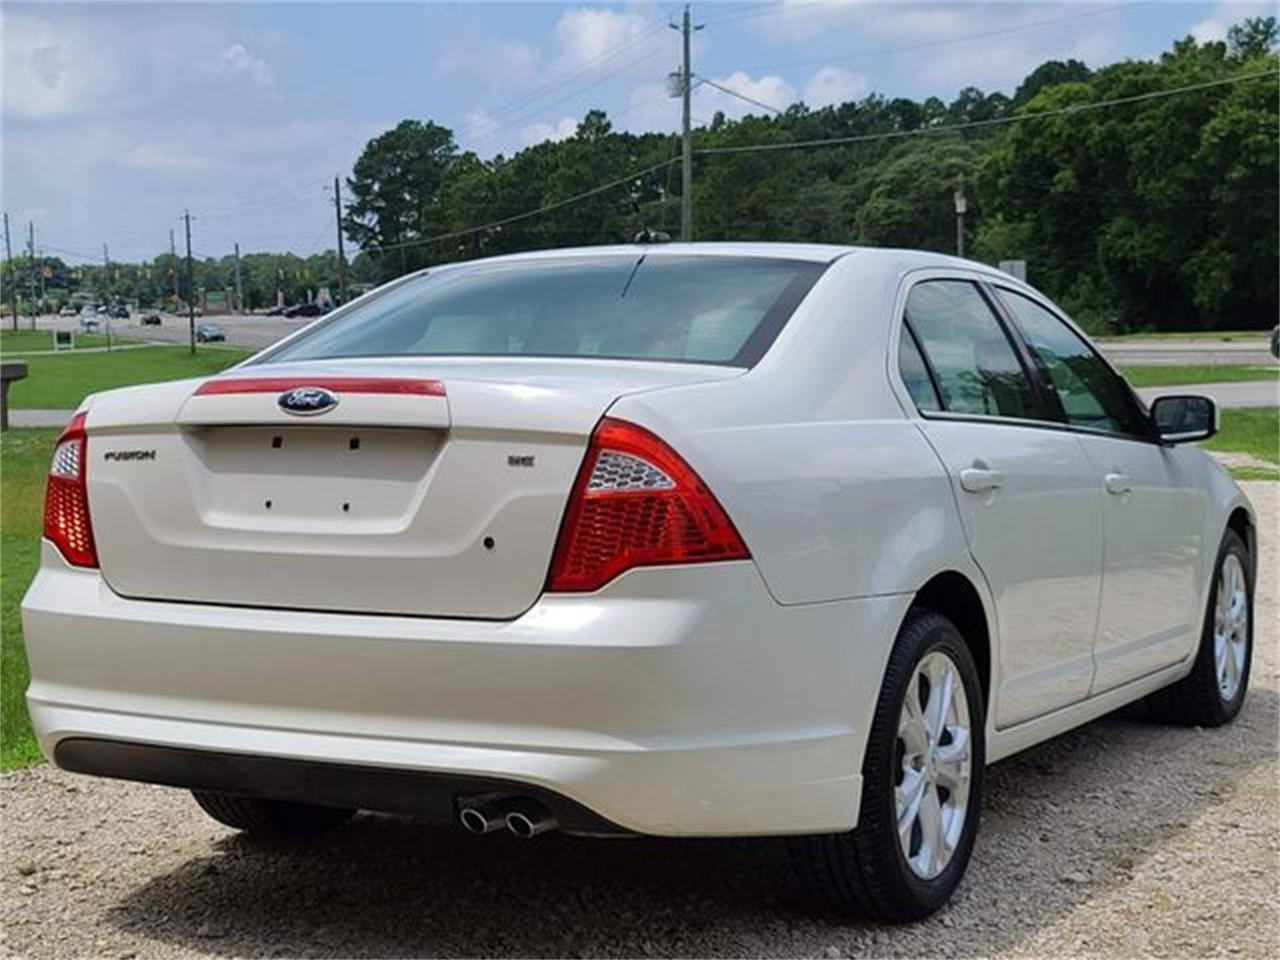 2012 Ford Fusion (CC-1376767) for sale in Hope Mills, North Carolina